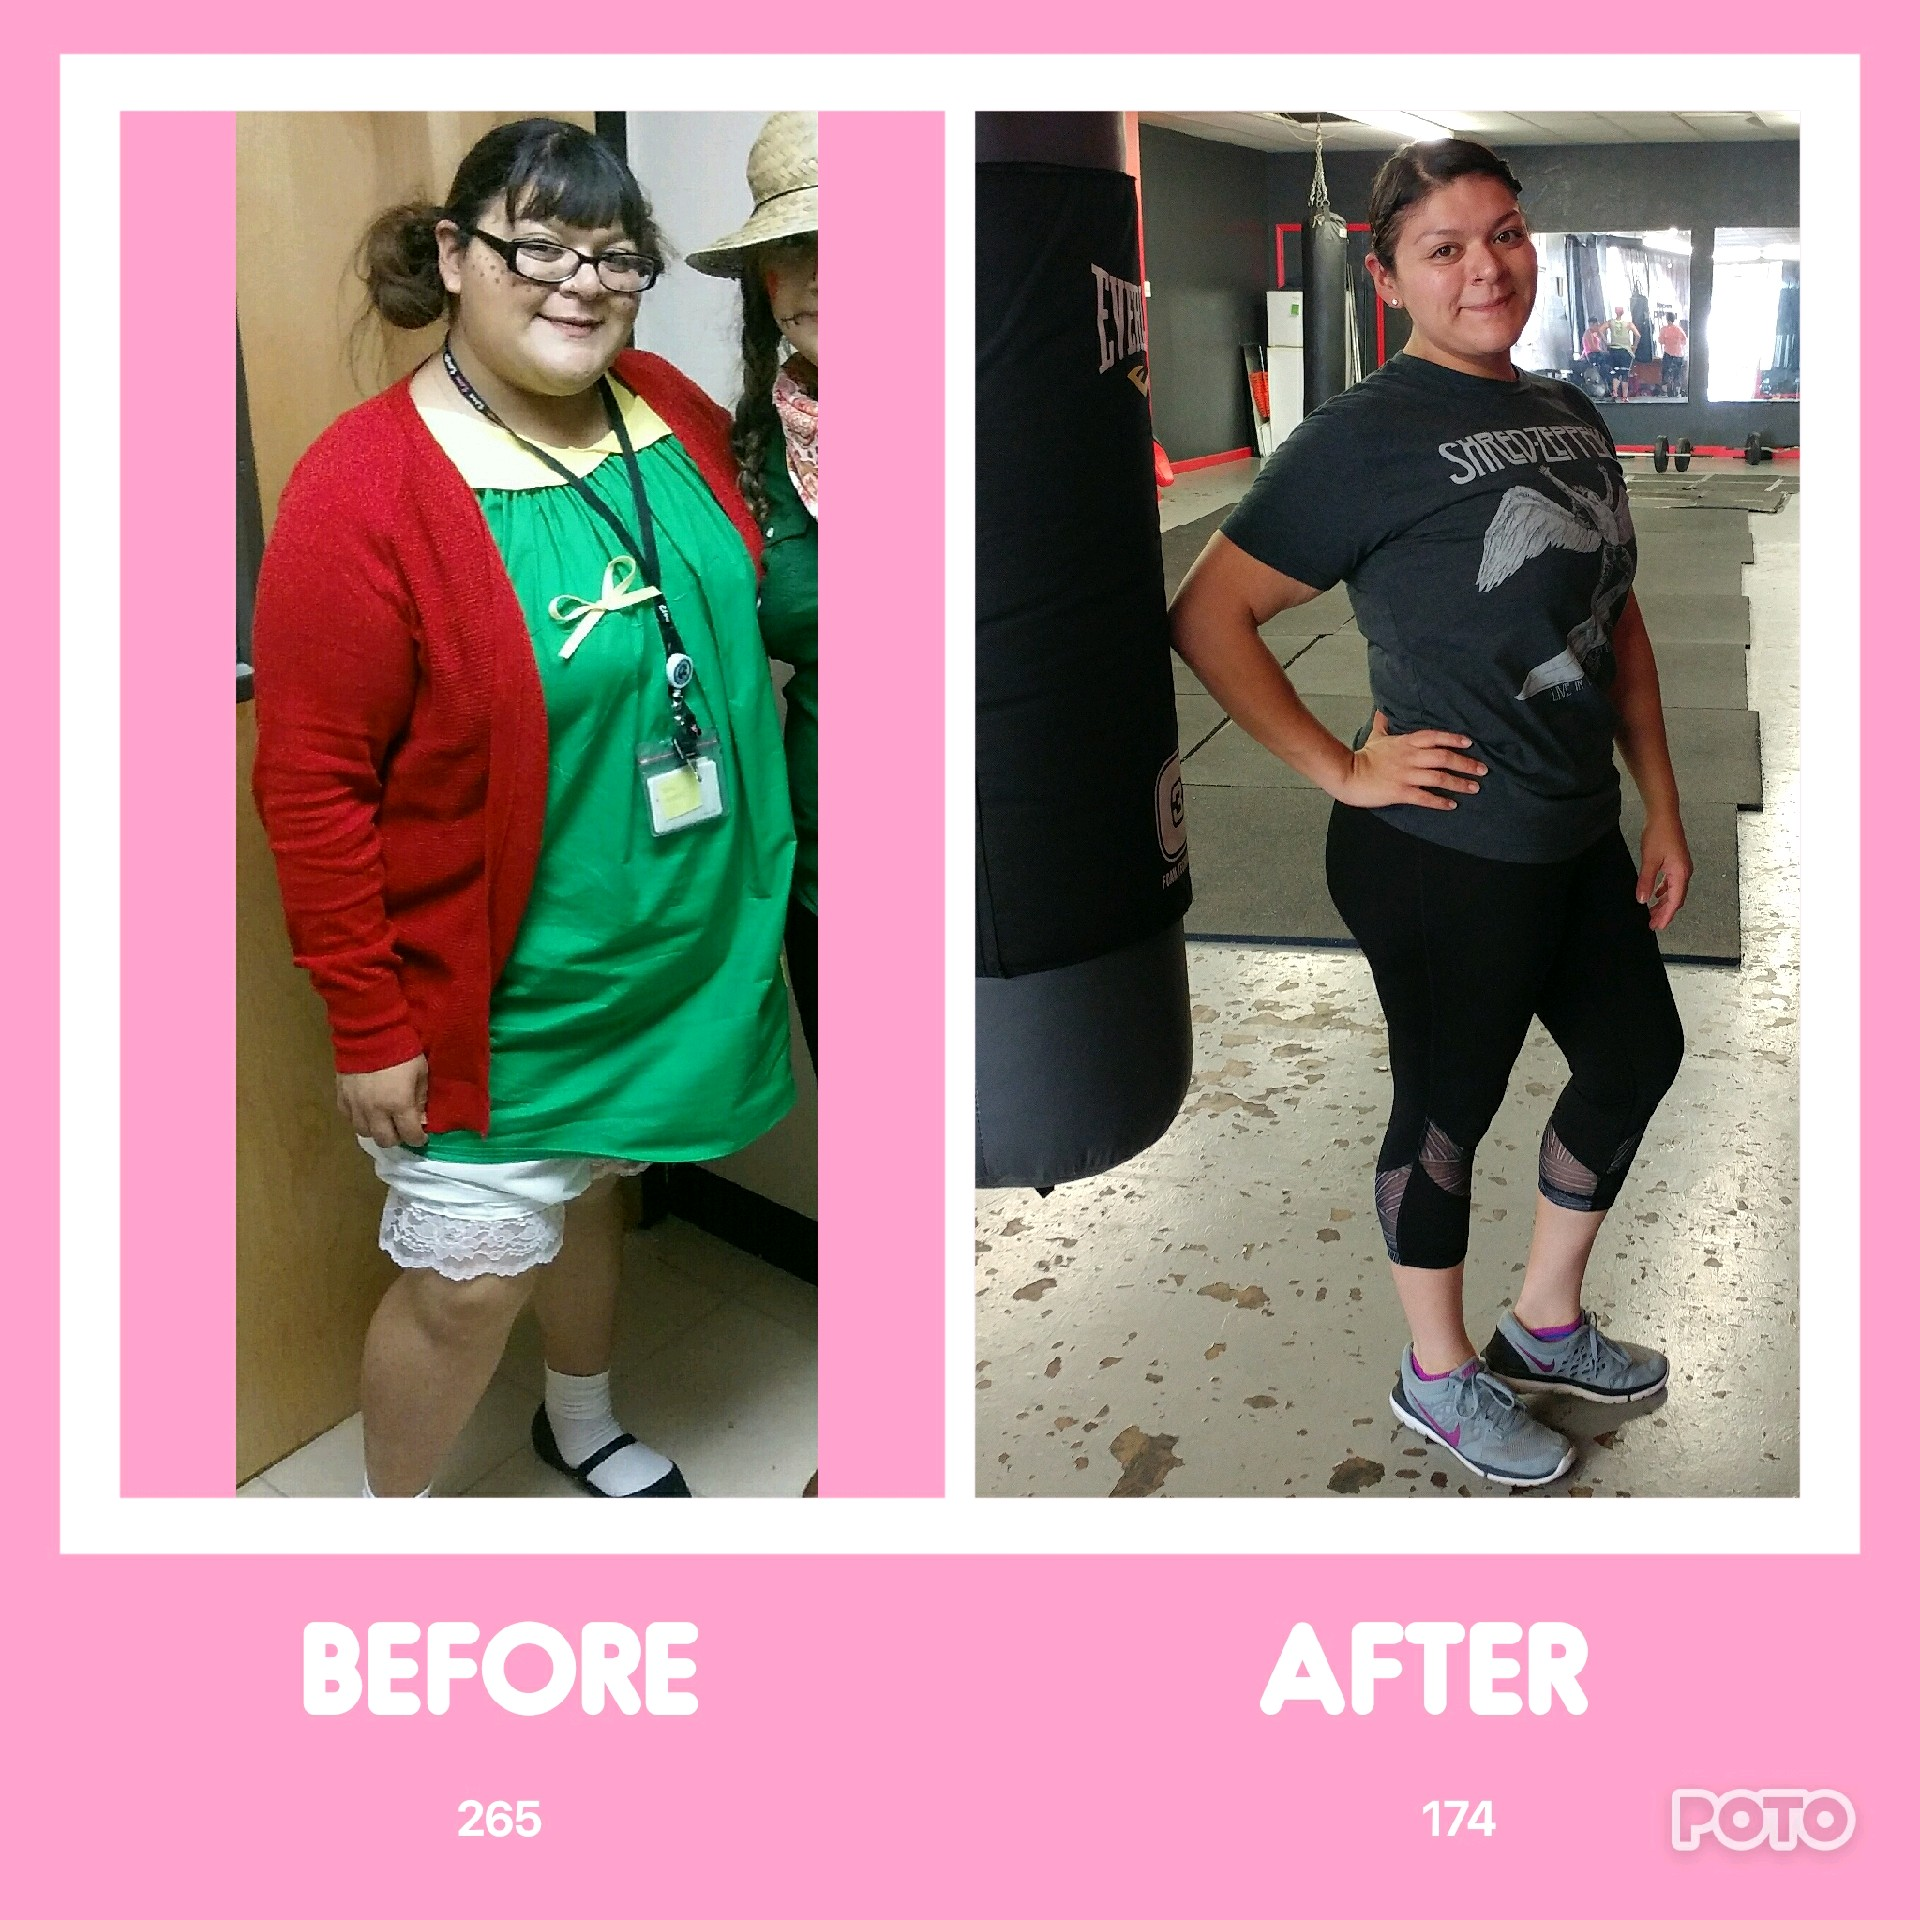 Jamie lost 90 pounds! See my before and after weight loss pictures, and read amazing weight loss success stories from real women and their best weight loss diet plans and programs. Motivation to lose weight with walking and inspiration from before and after weightloss pics and photos.